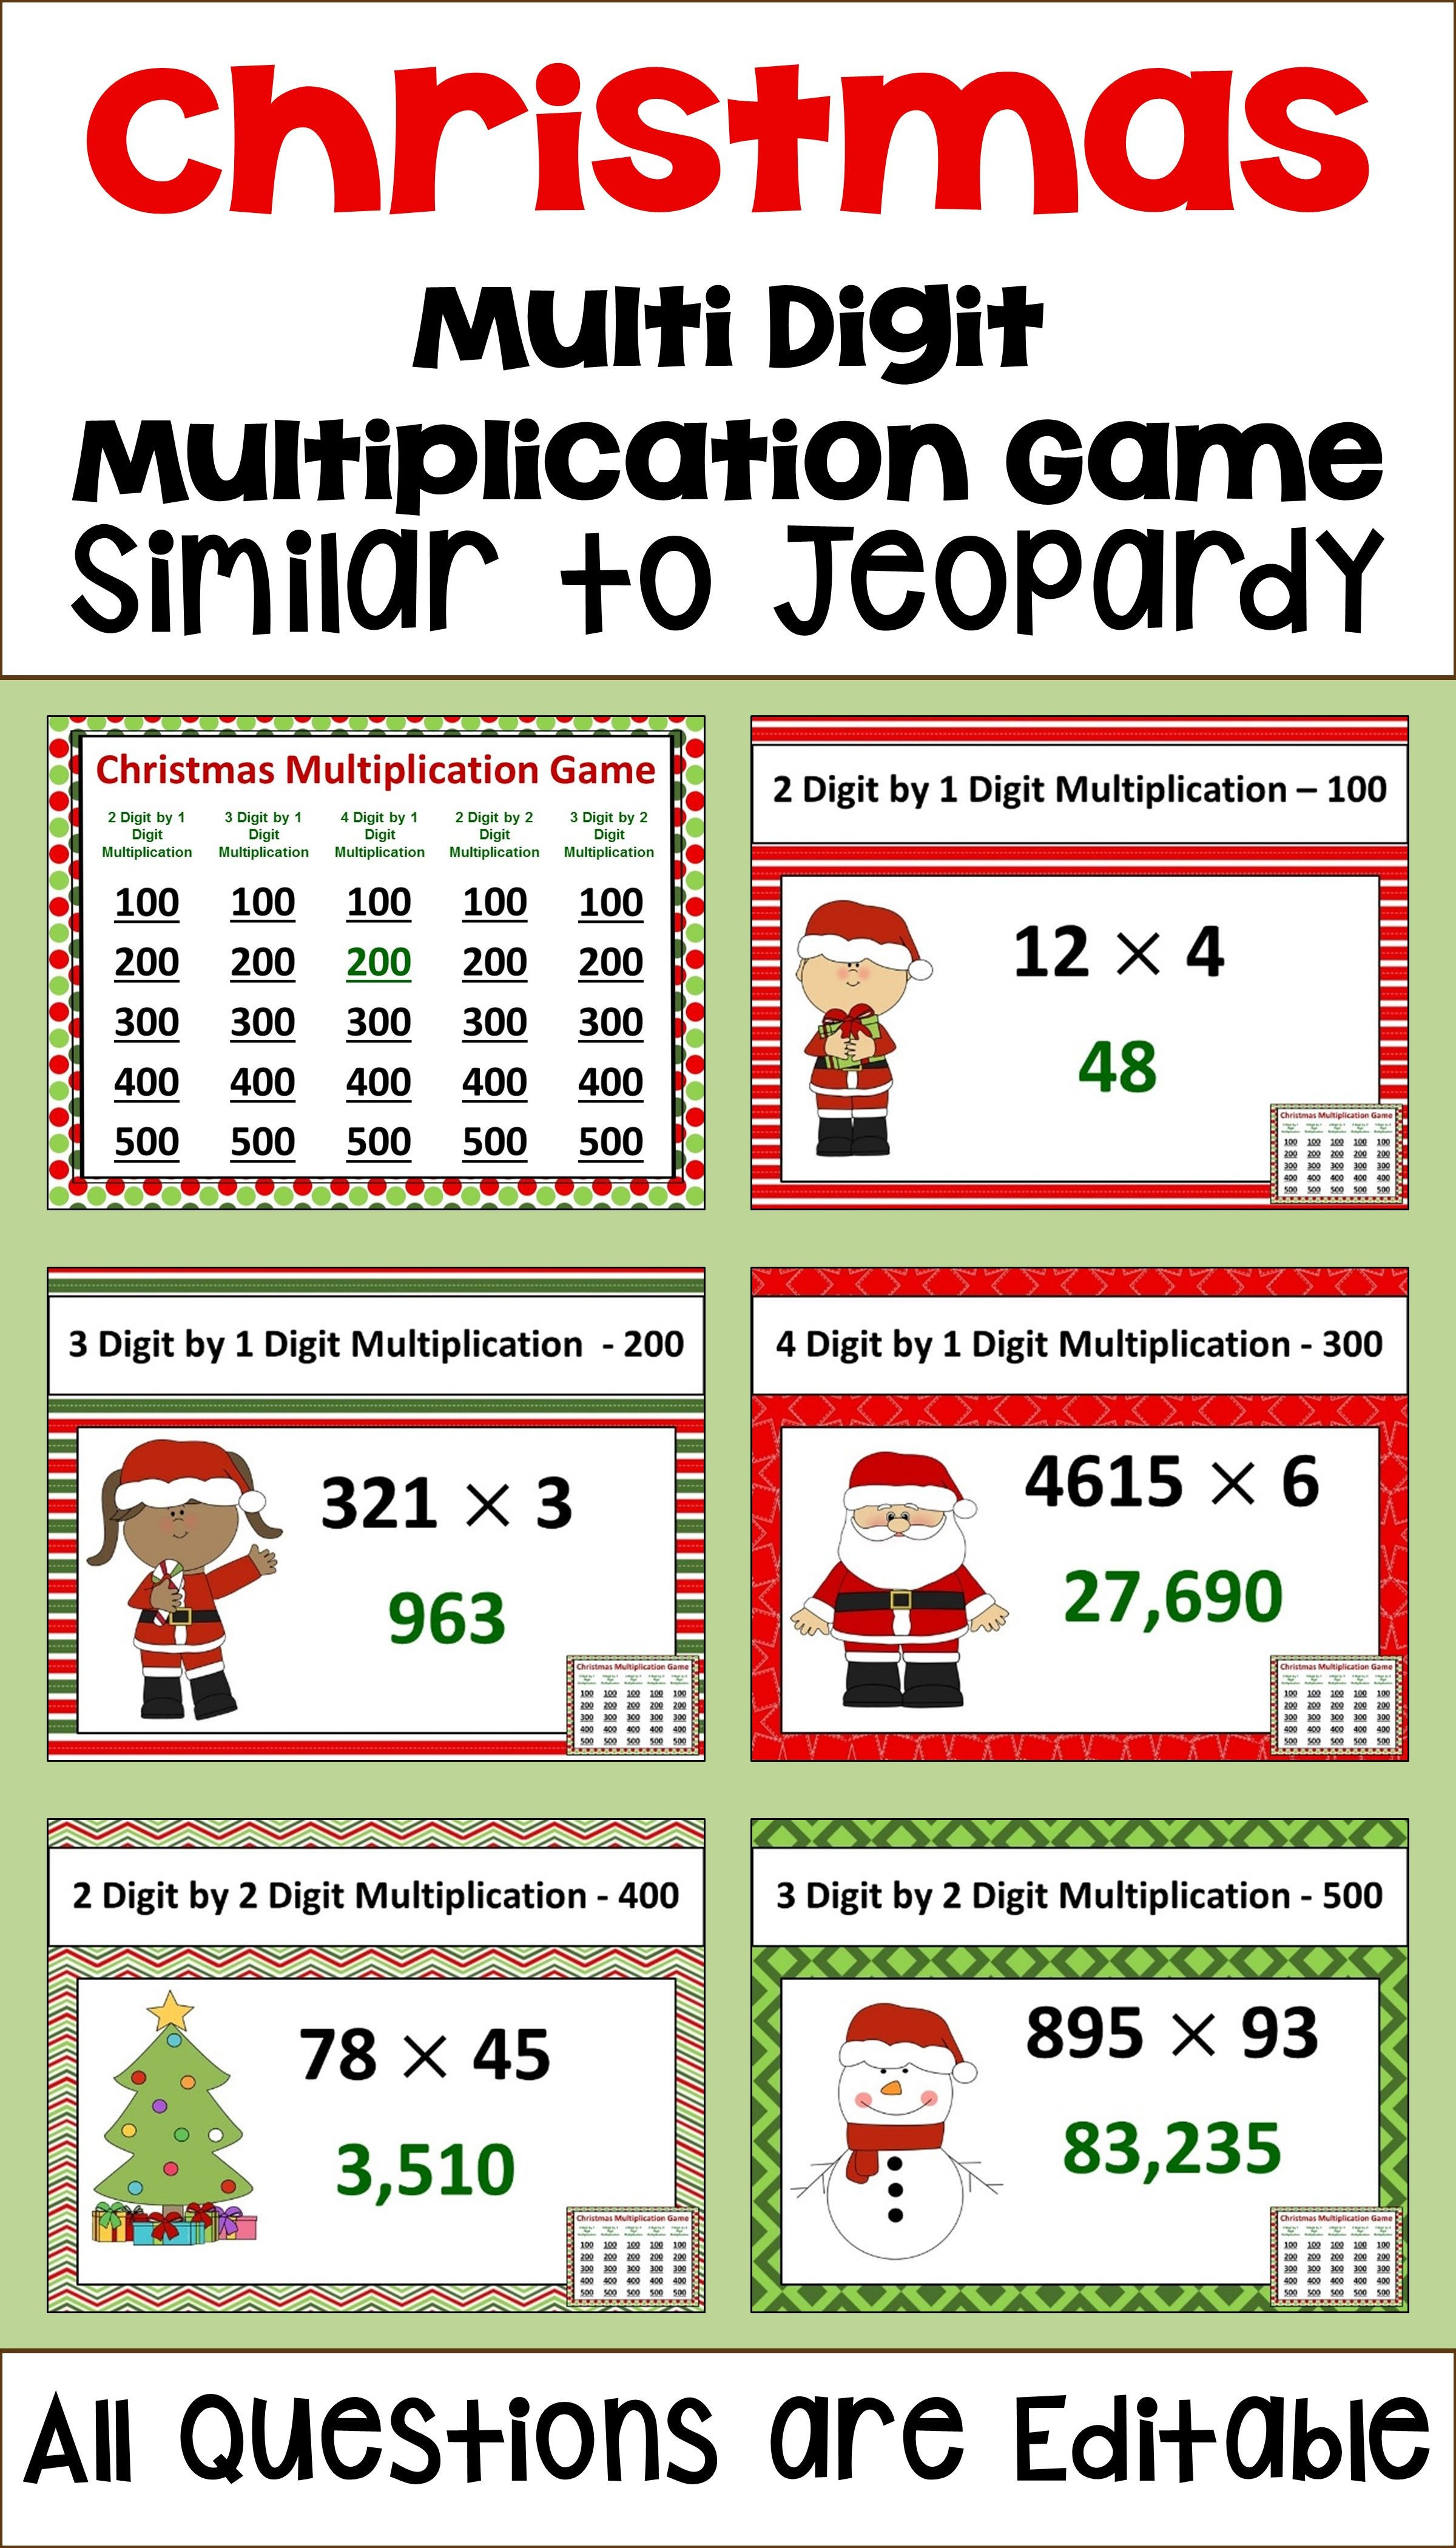 5th Grade Jeopardy Math Christmas Multiplication Game Similar to Jeopardy